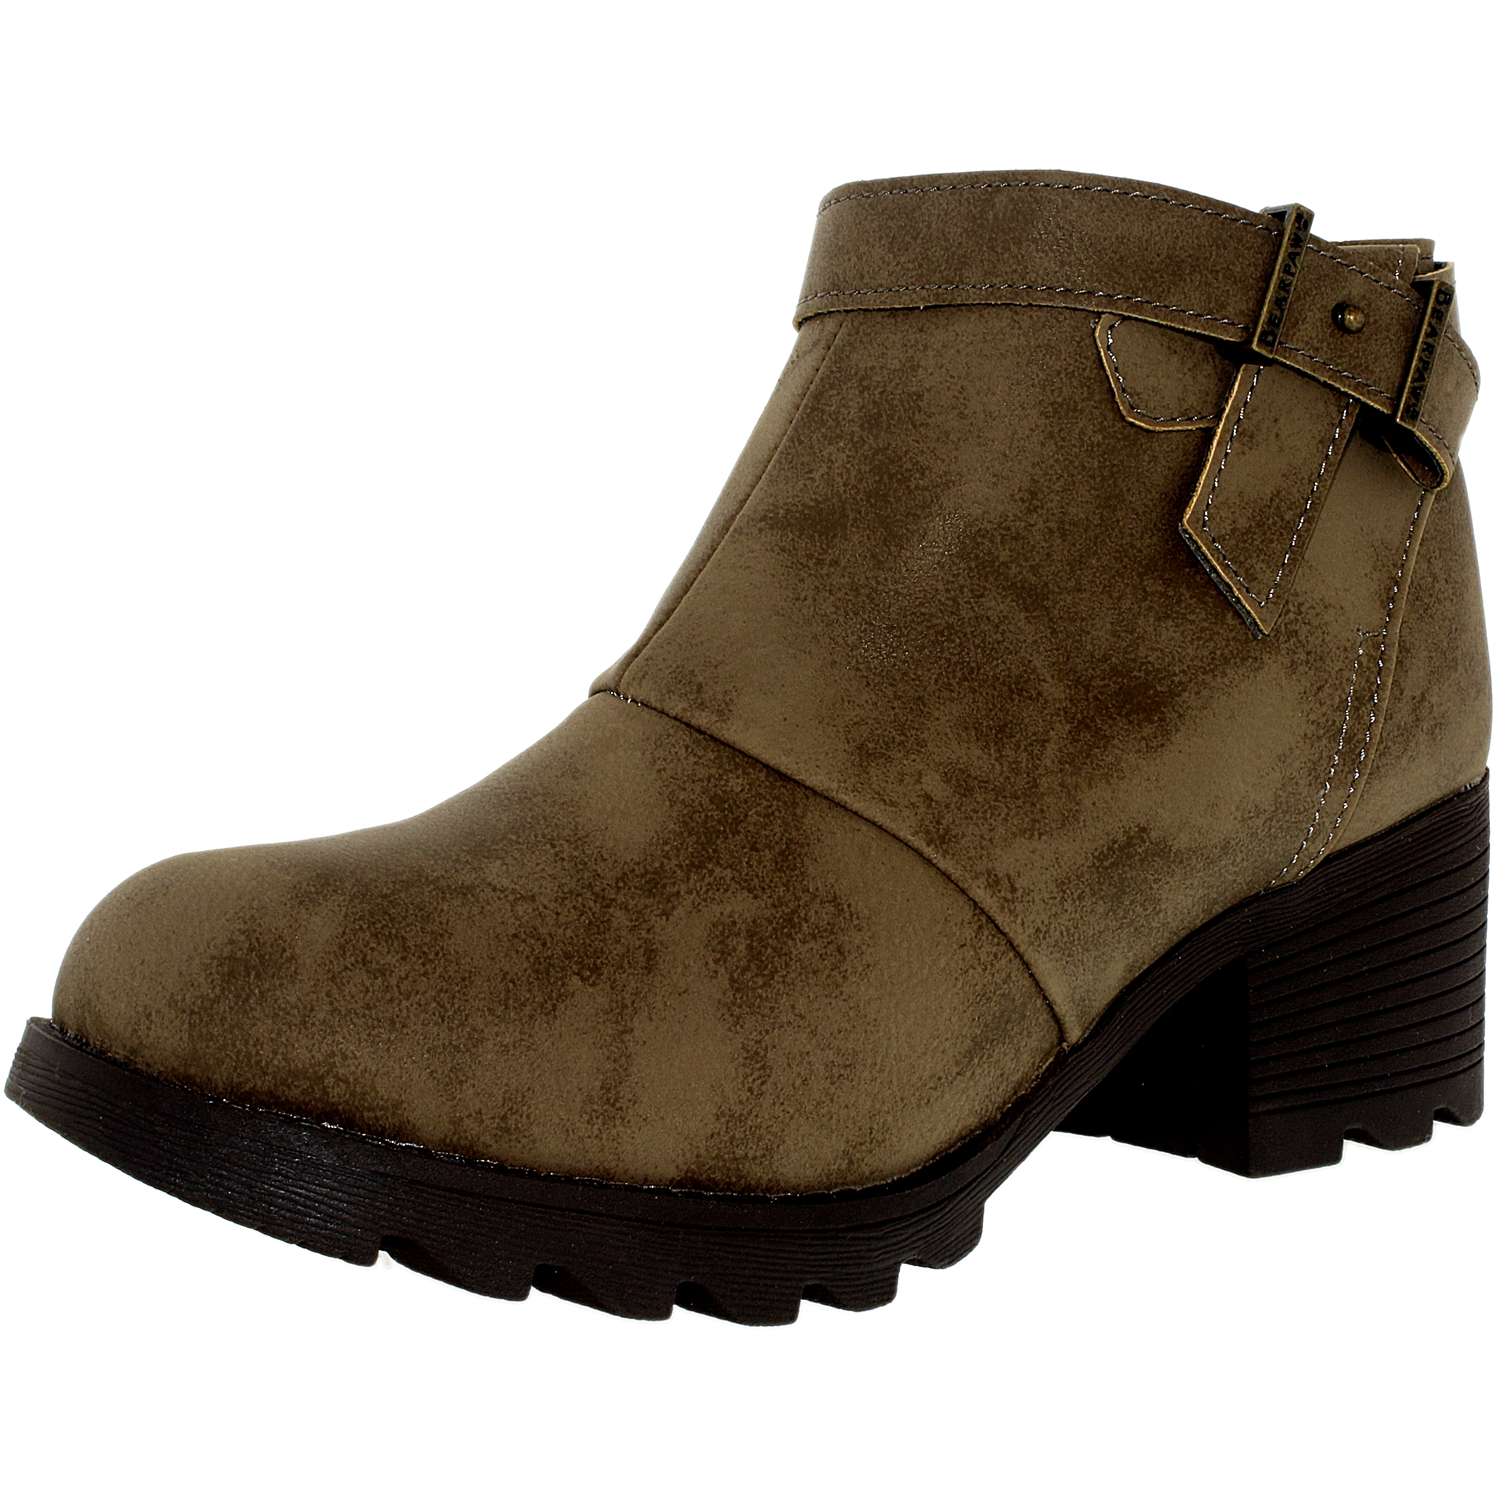 Bearpaw Women's Thea Leather/Wool Stone Ankle-High Sheepskin Boot - 9M